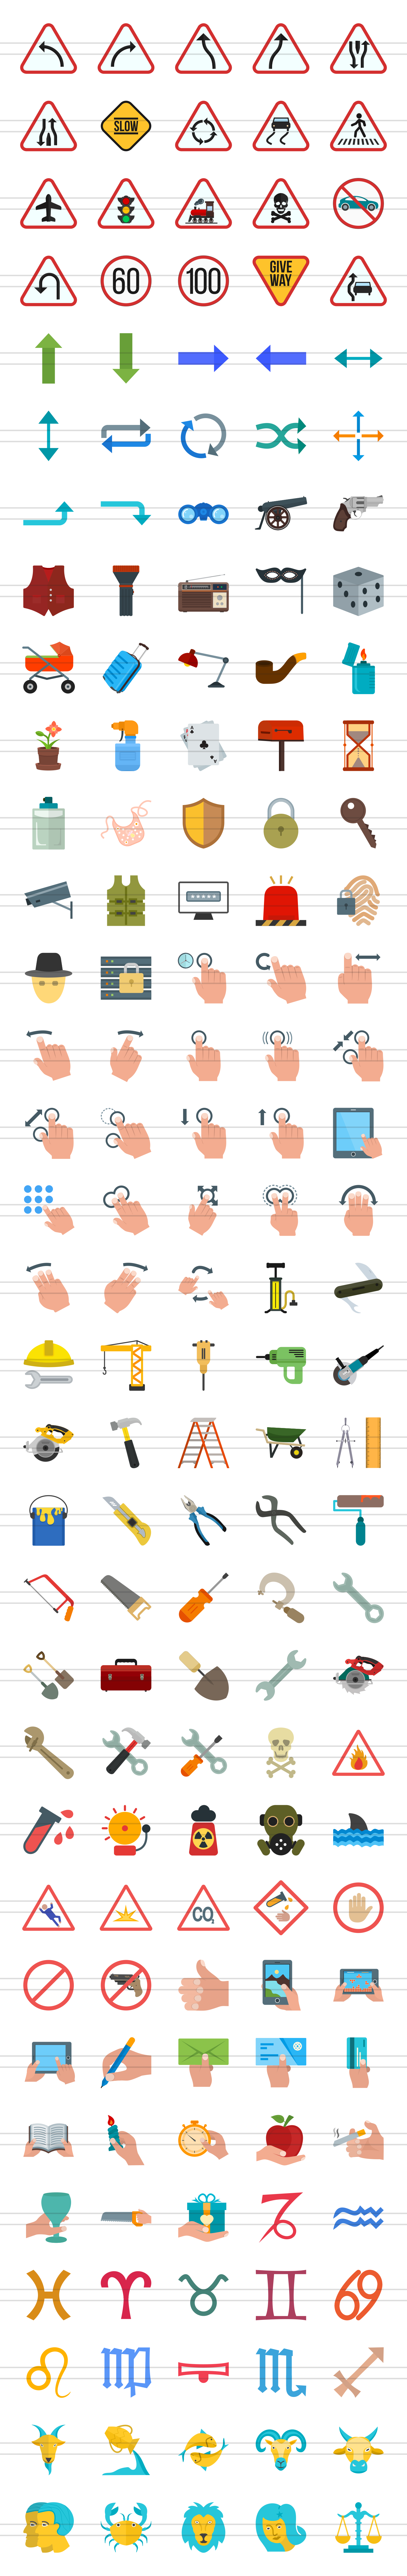 166 Signs & Symbols Flat Icons example image 2